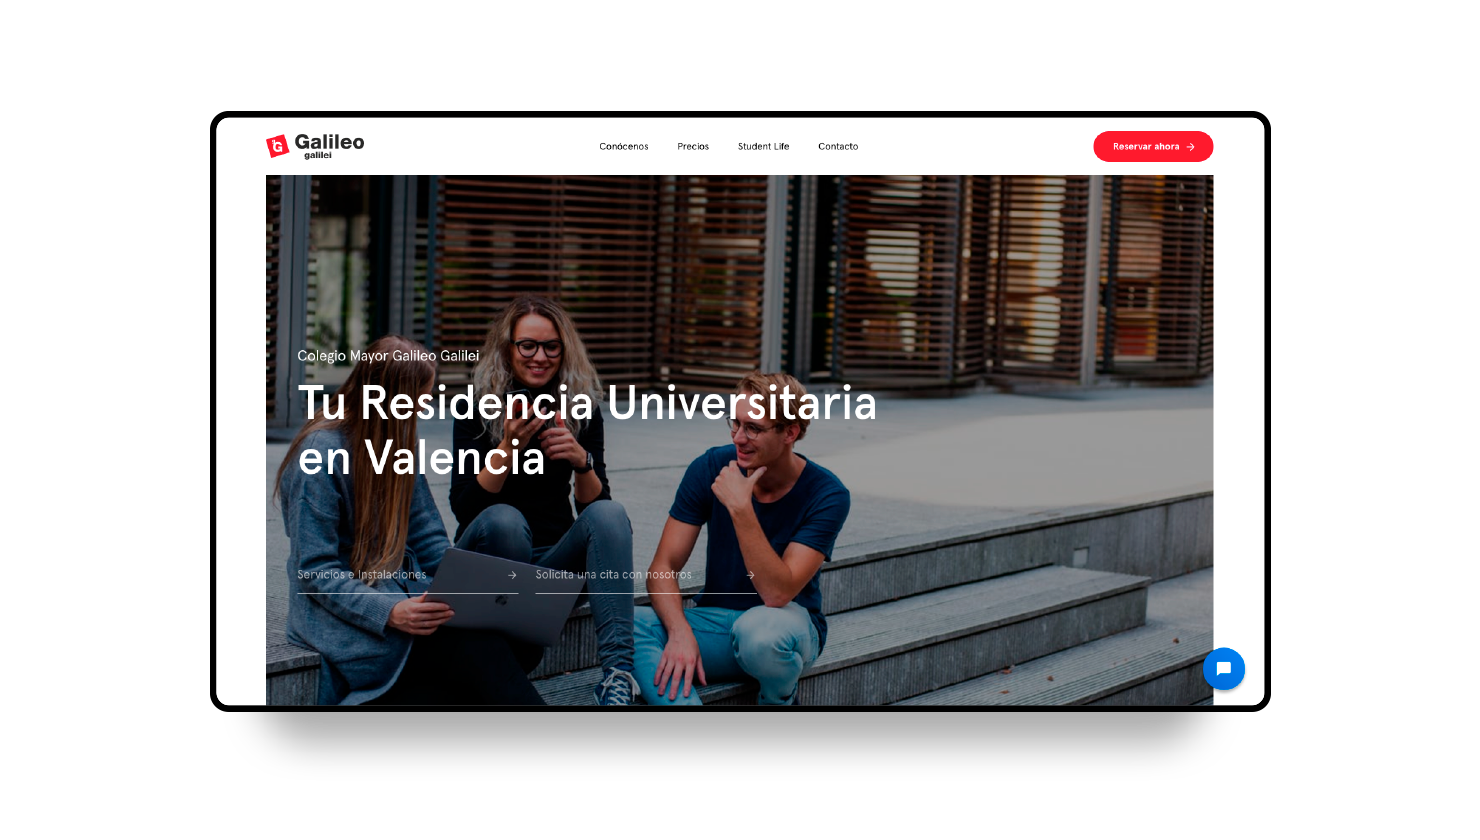 Galileo Galilei Residence Hall in Valencia, new website